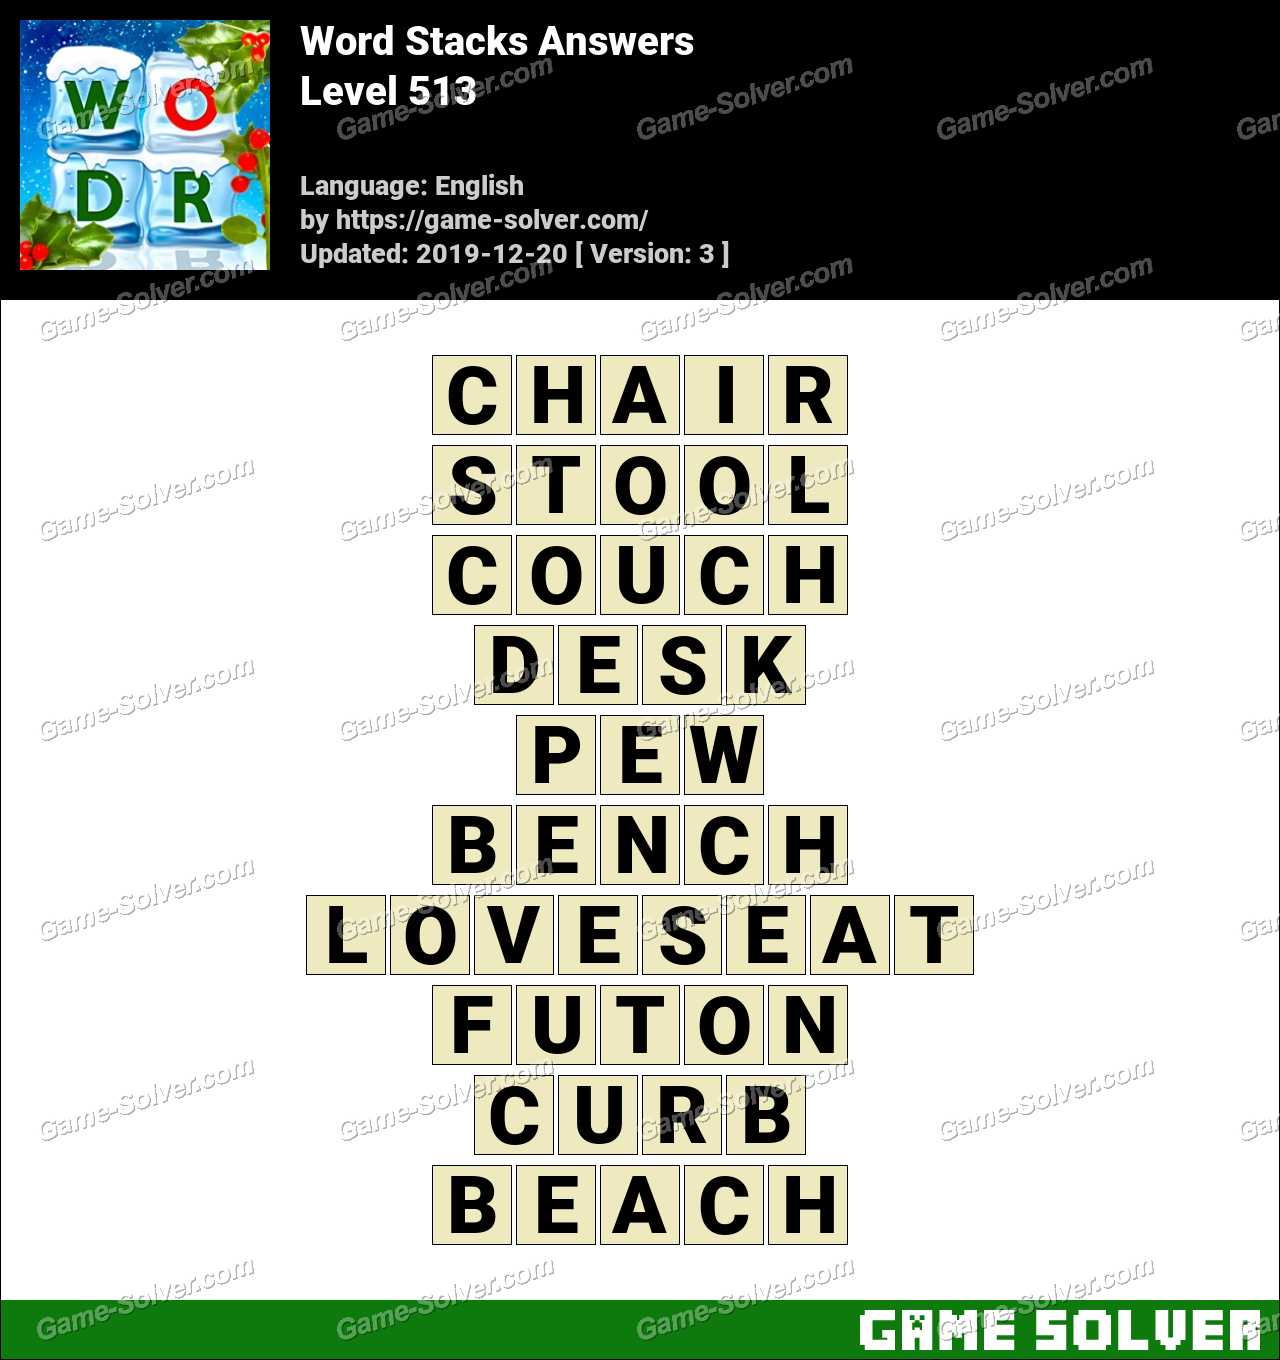 Word Stacks Level 513 Answers